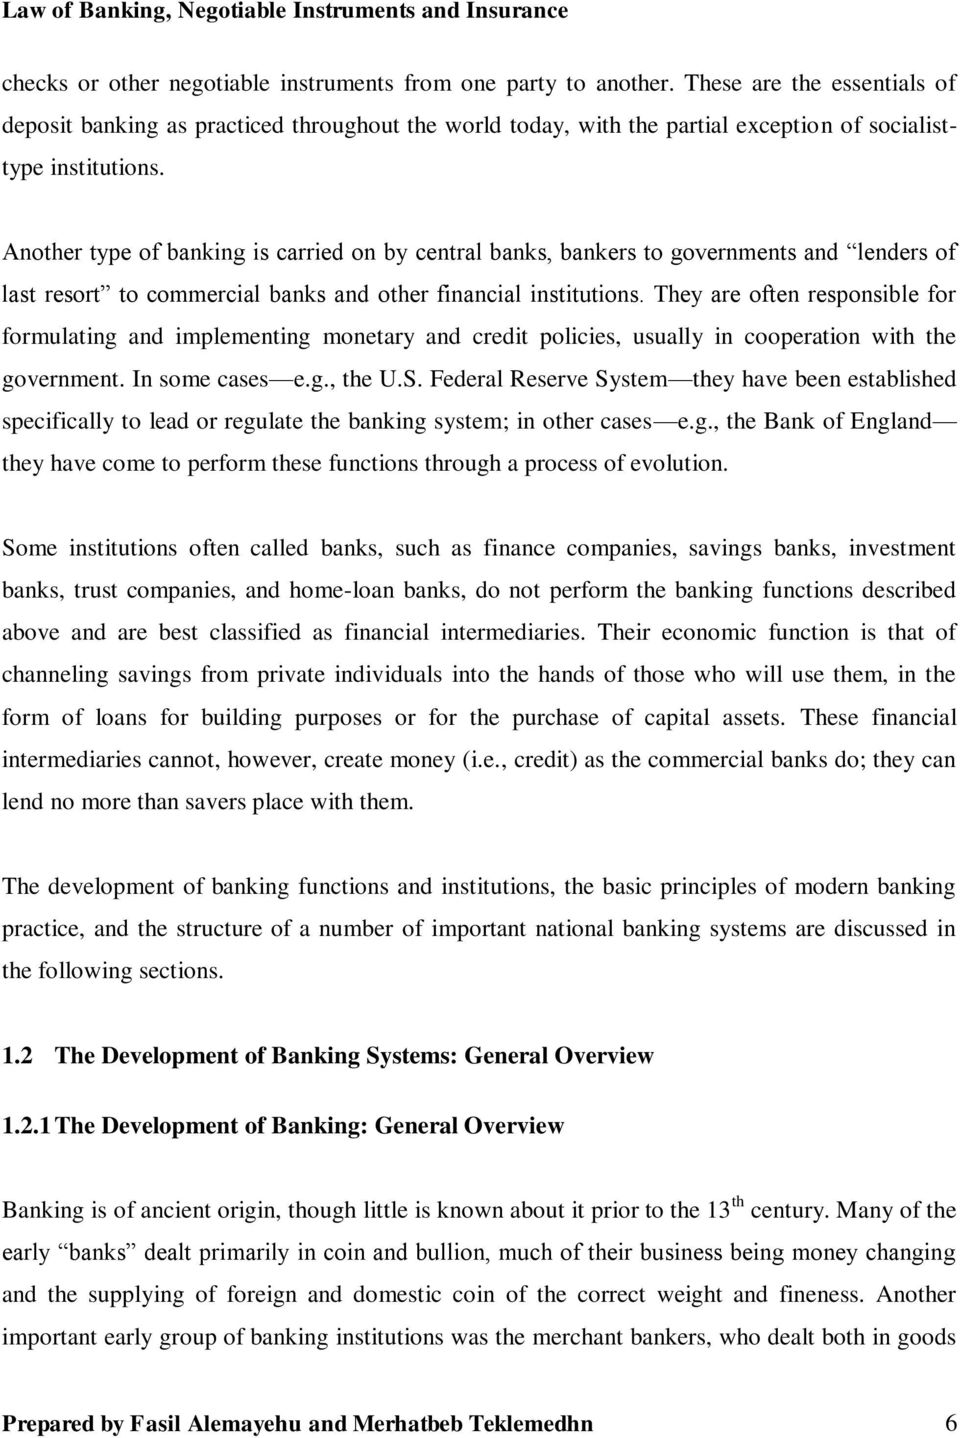 Law Of Banking Negotiable Instruments And Insurance Teaching